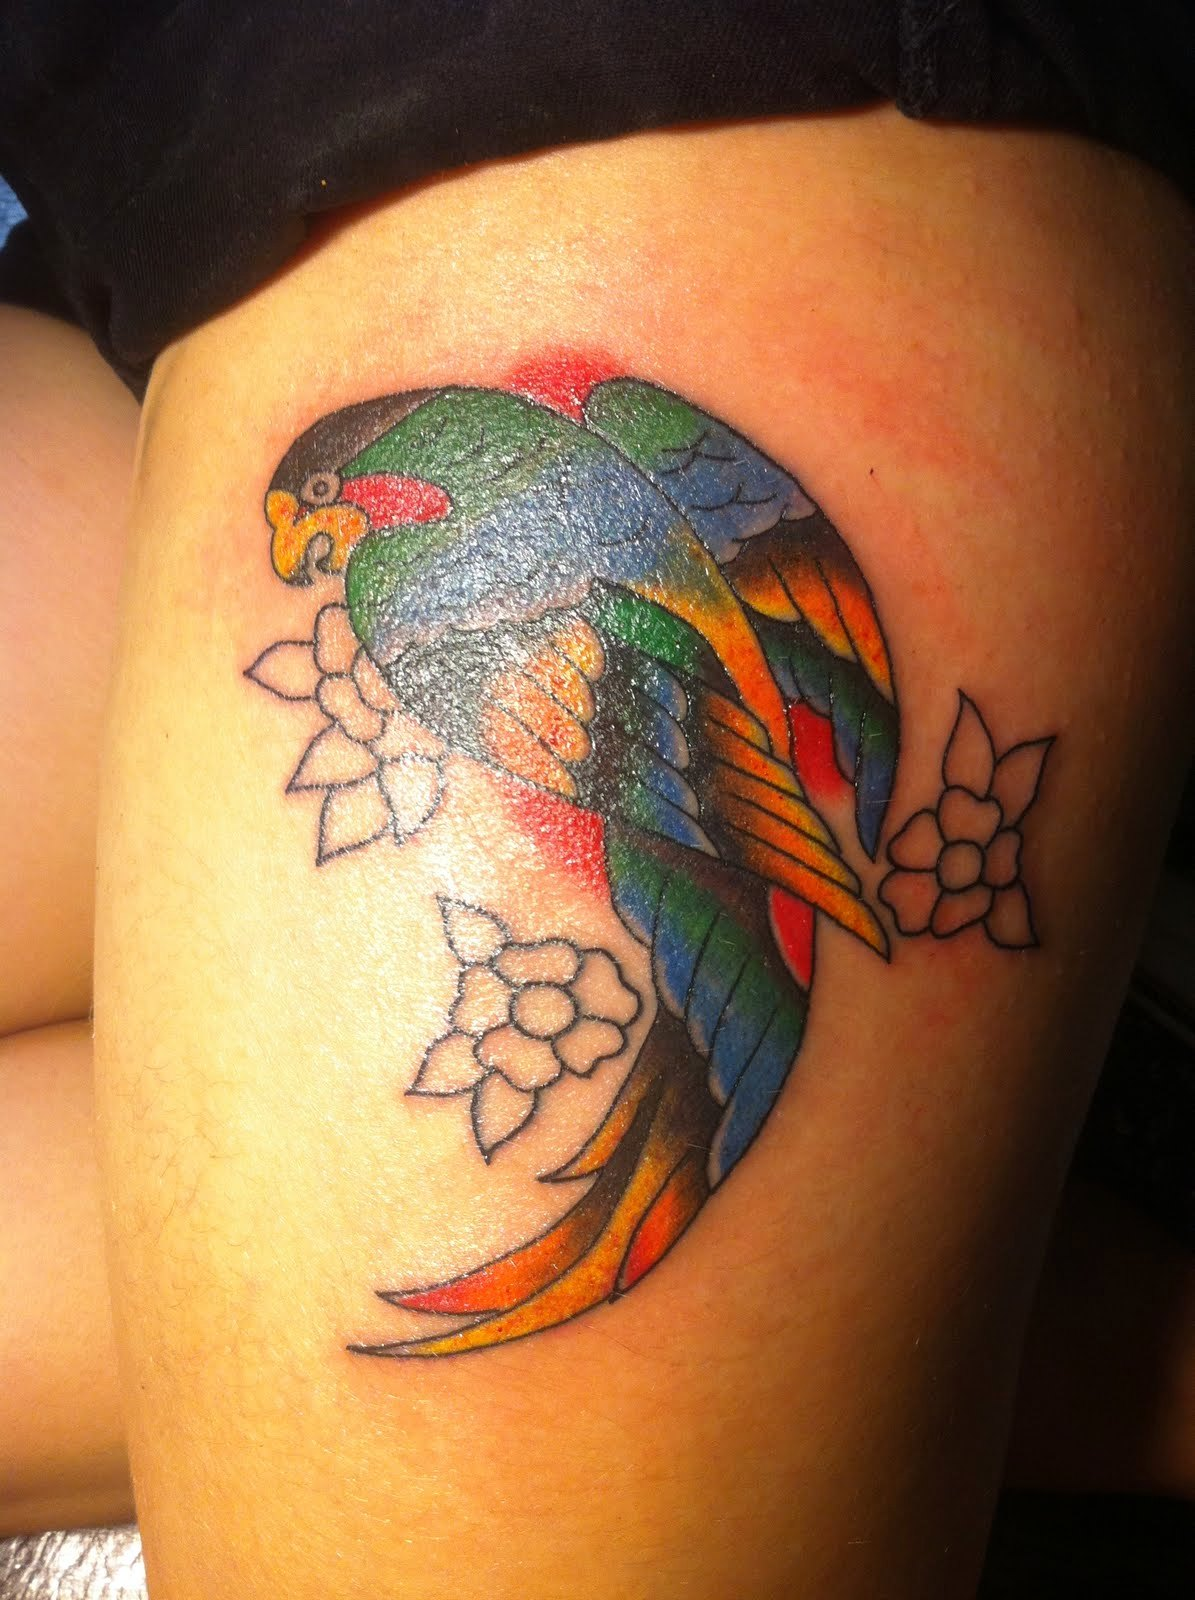 Tattoo Ideas Upper Thigh: 30 Women Thigh Tattoos To Try To Look Attractive